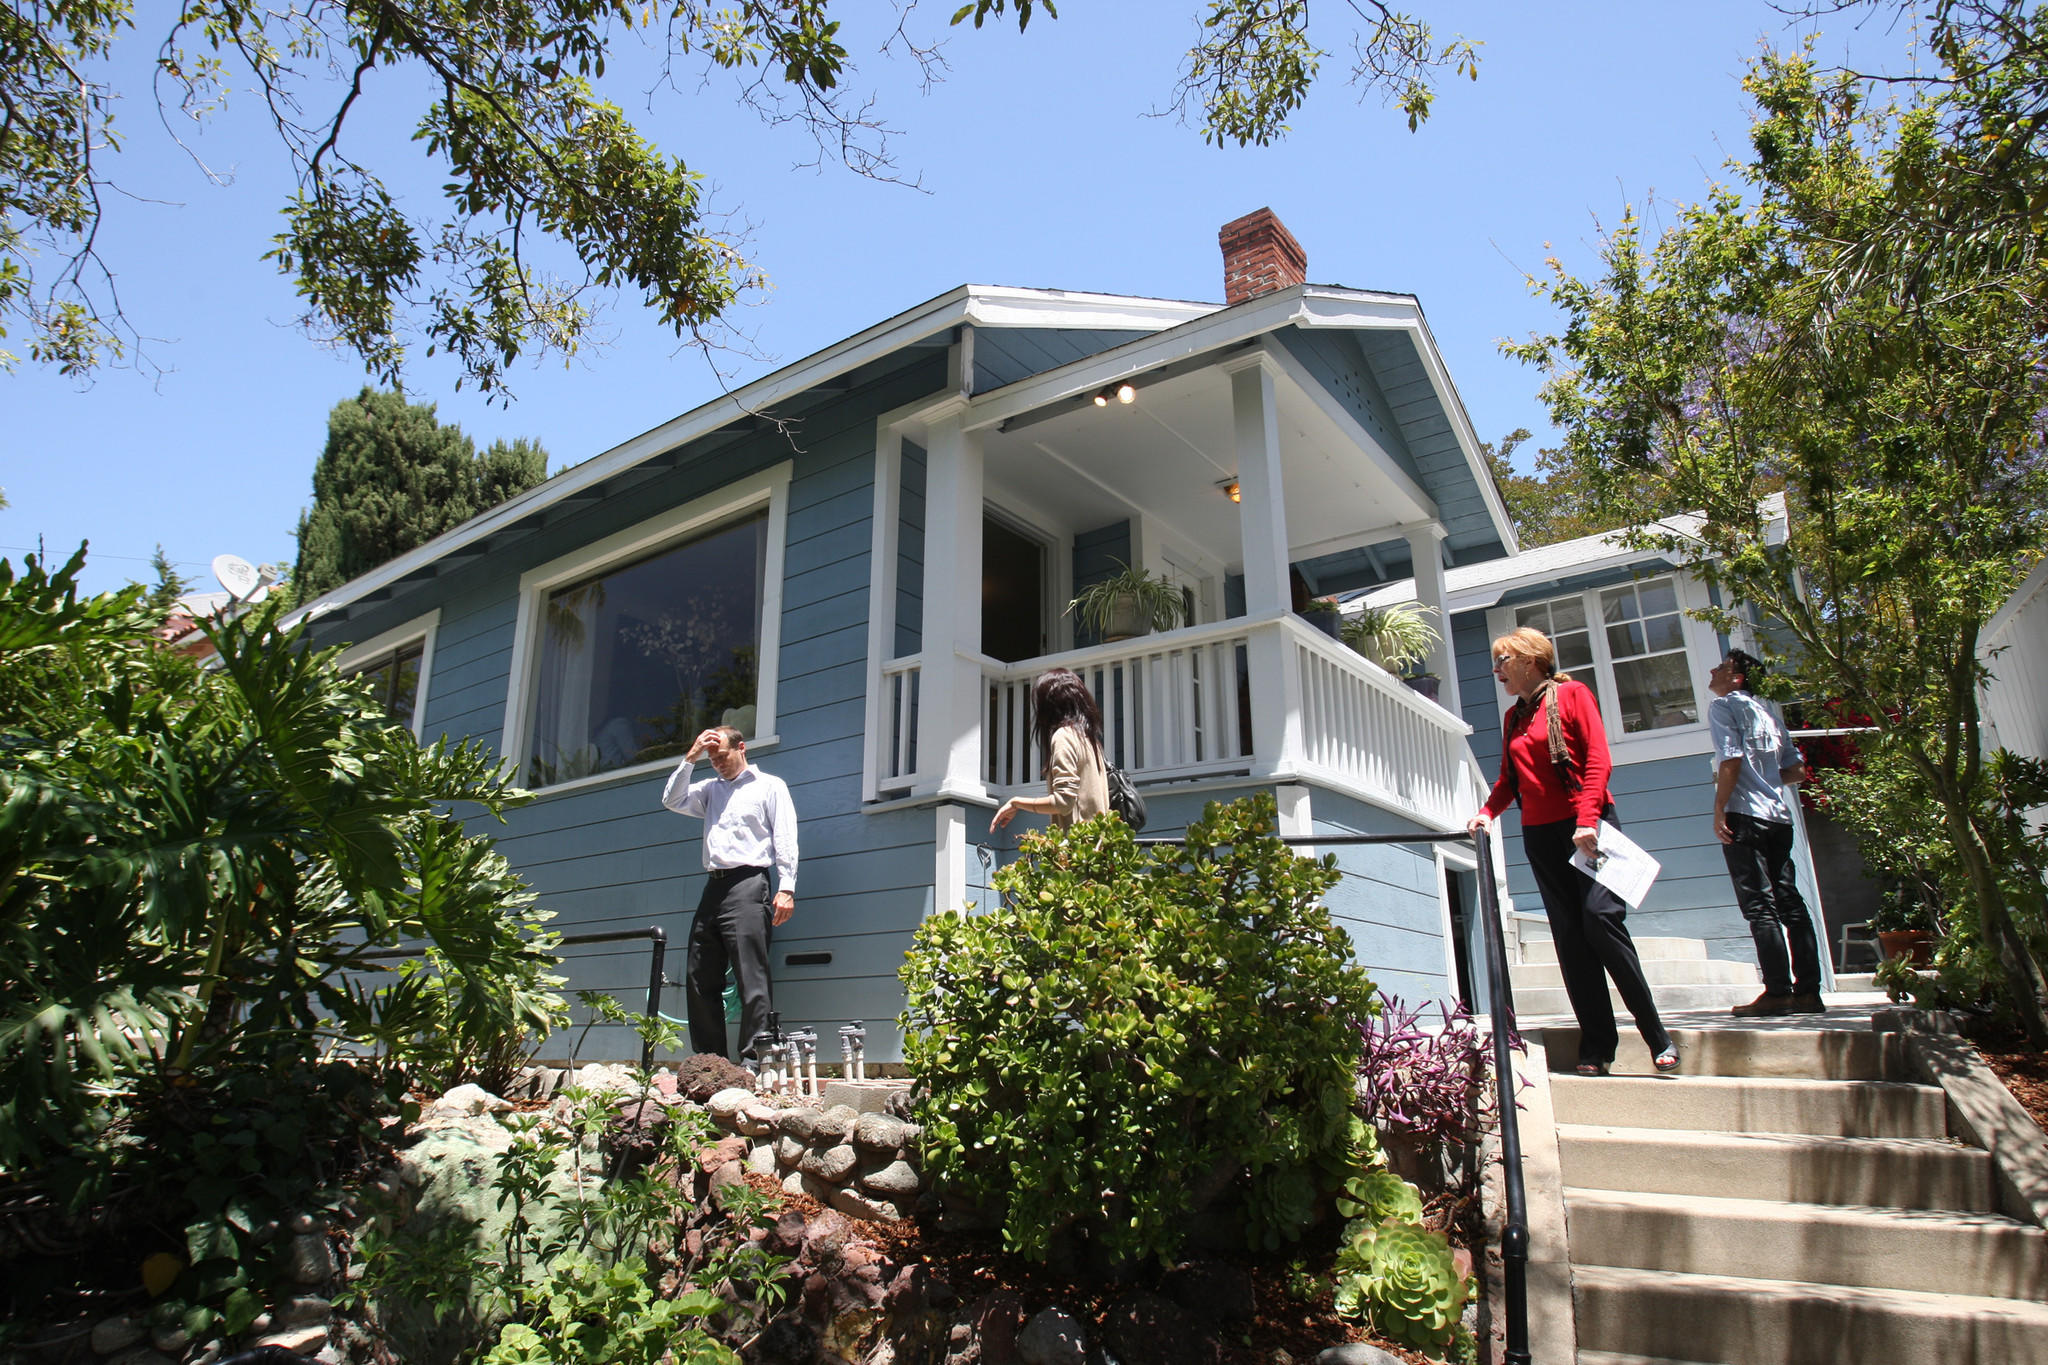 Homes are staying on the market longer in Southern California this spring. Here, prospective buyers tour a house in Highland Park.